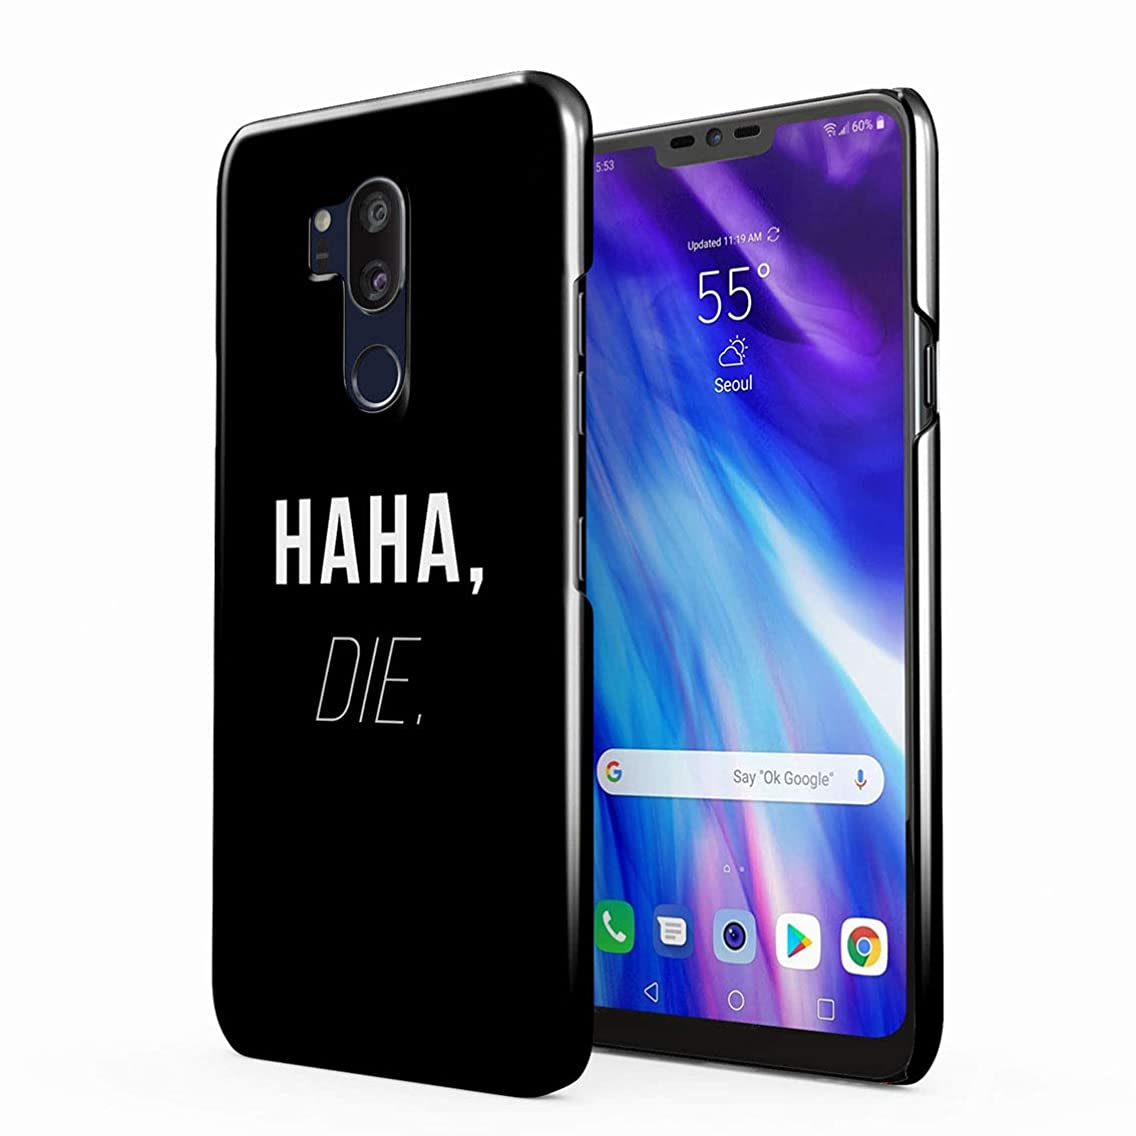 Black Haha, Die. Plastic Phone Snap On Back Case Cover Shell for LG G7